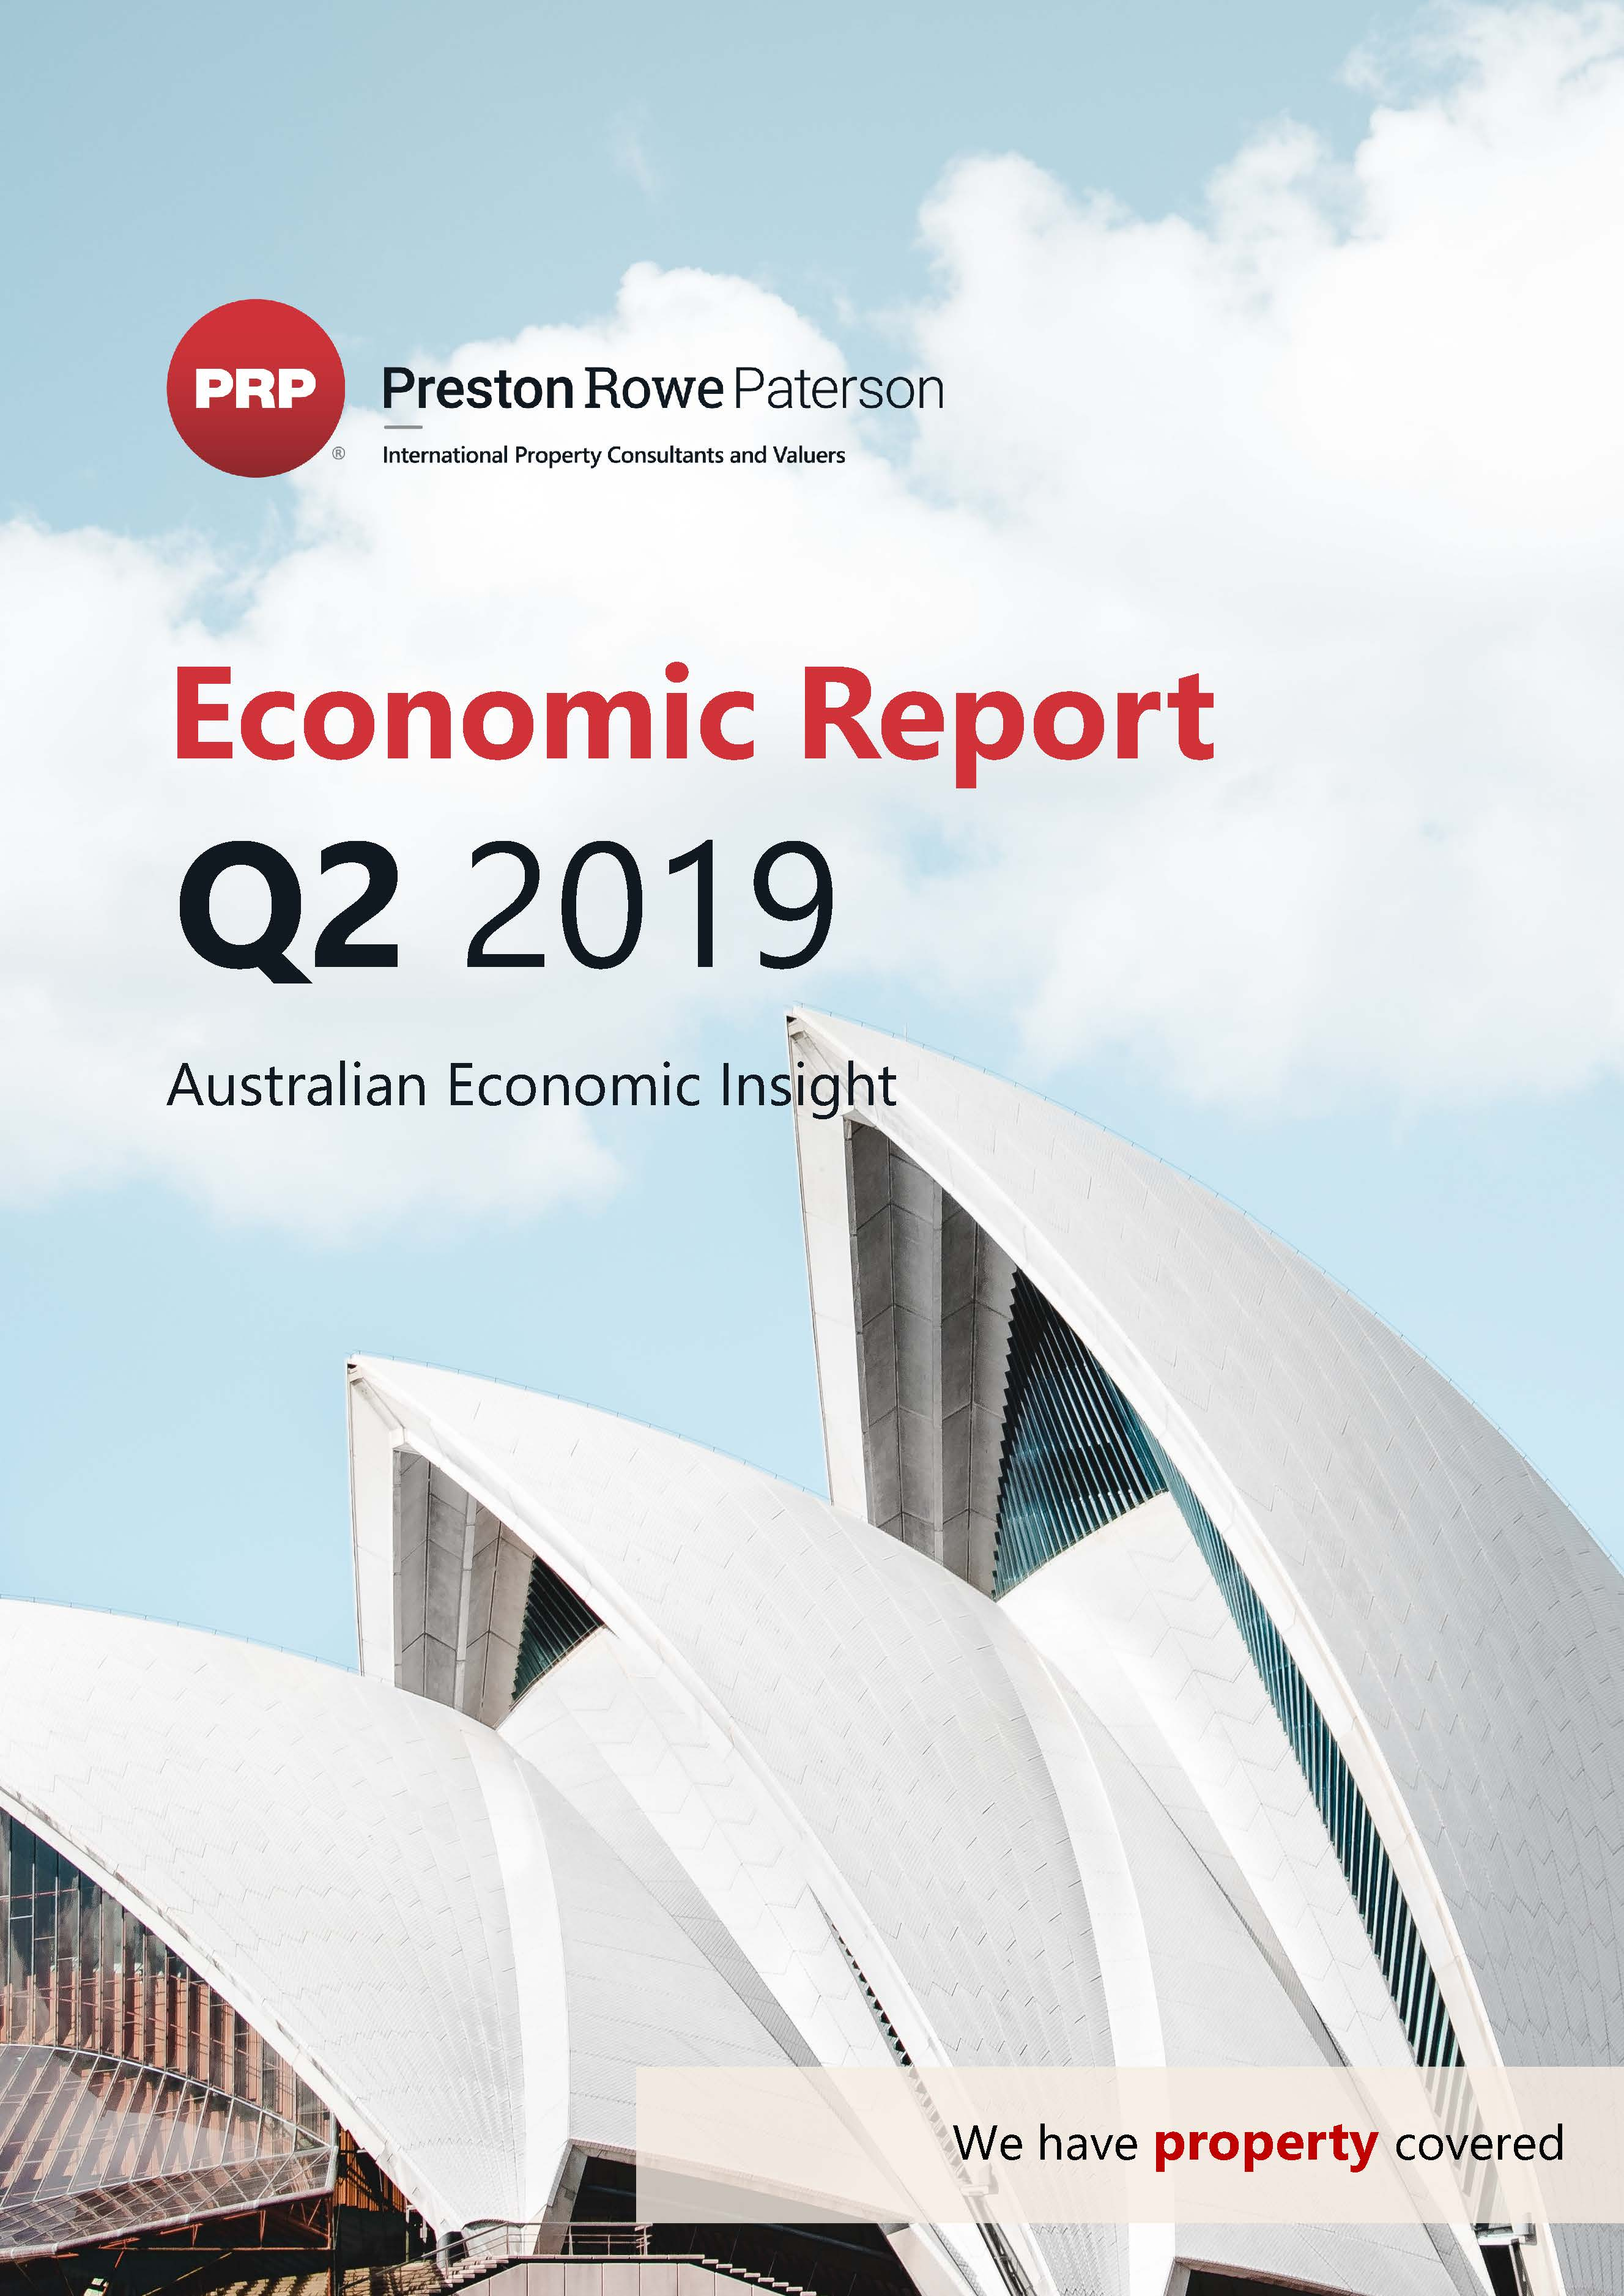 Economic Report - Quarter 2 2019 - Australia